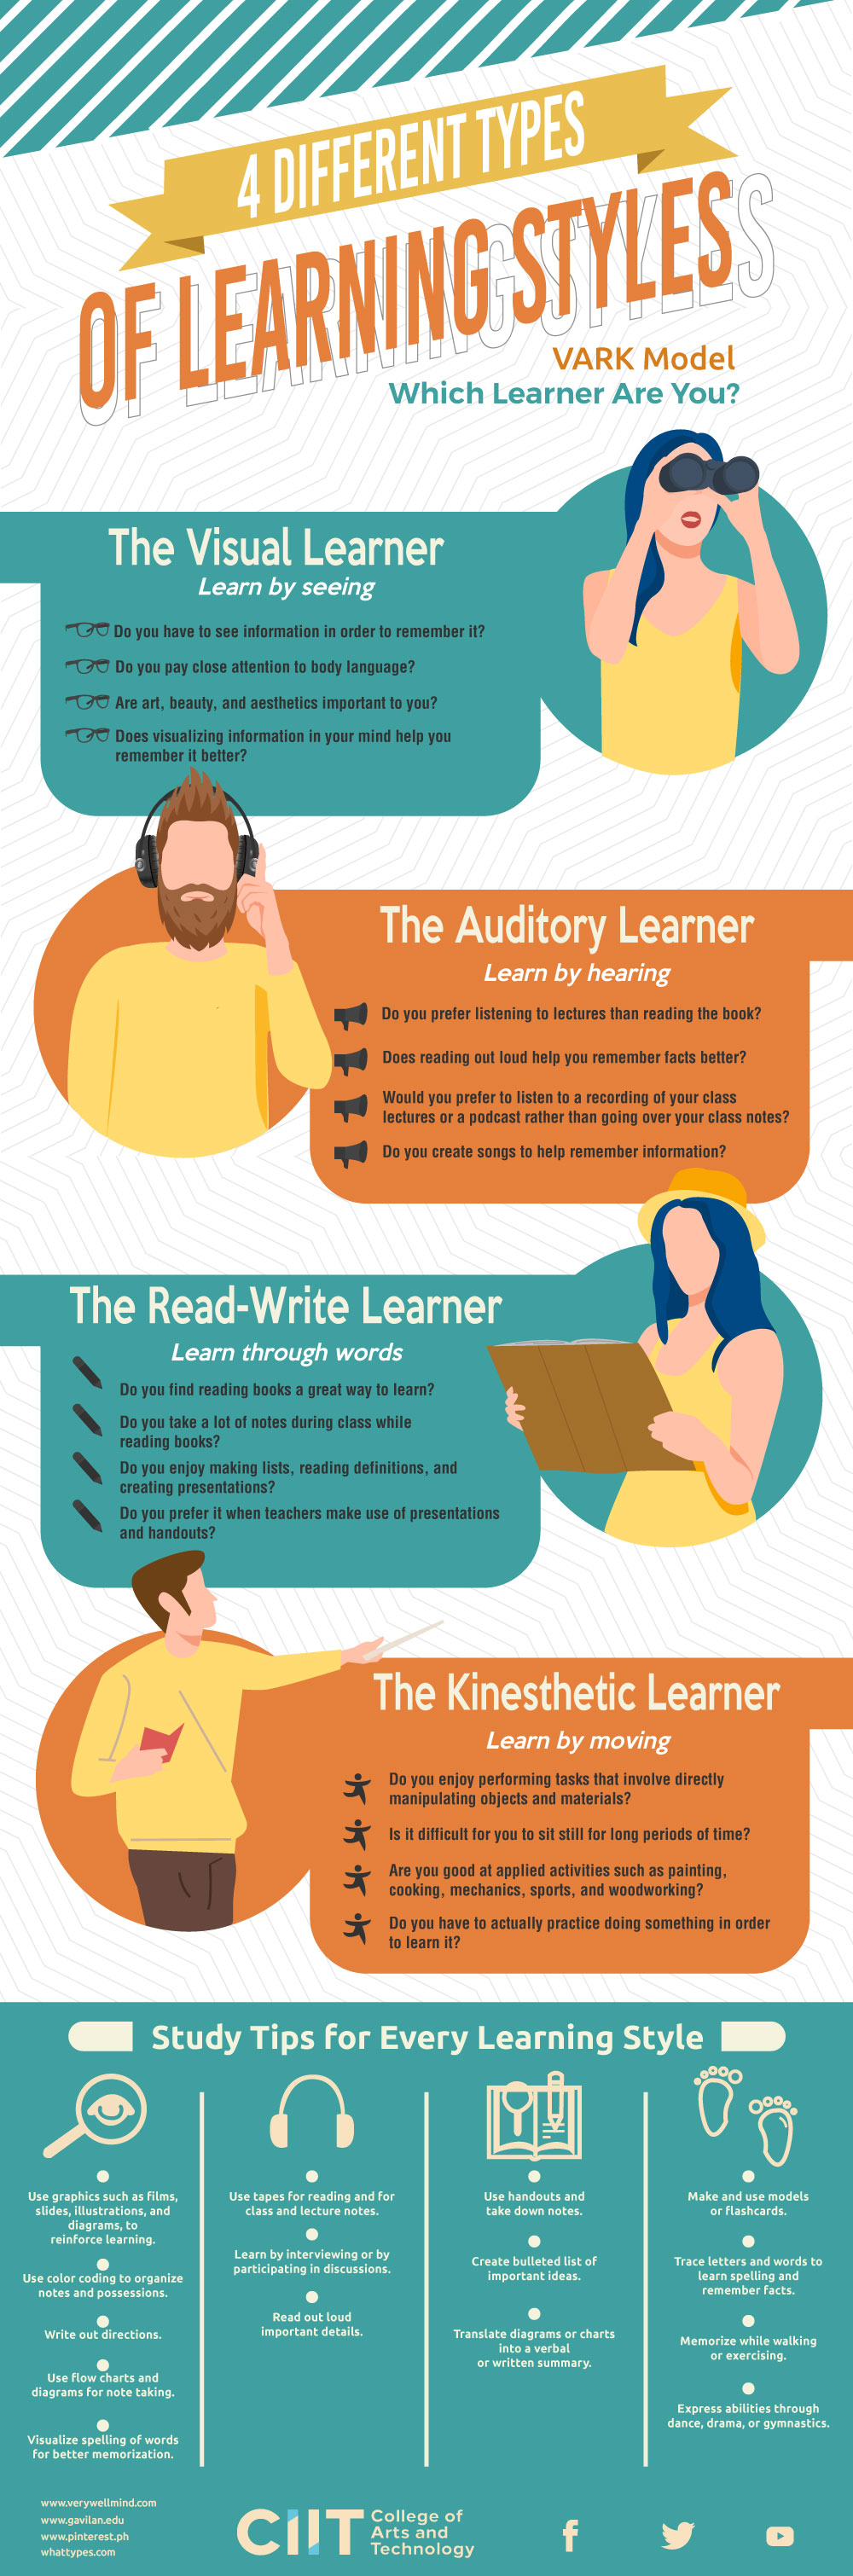 4 Different Types of Learning Styles: Which Learner Are You?